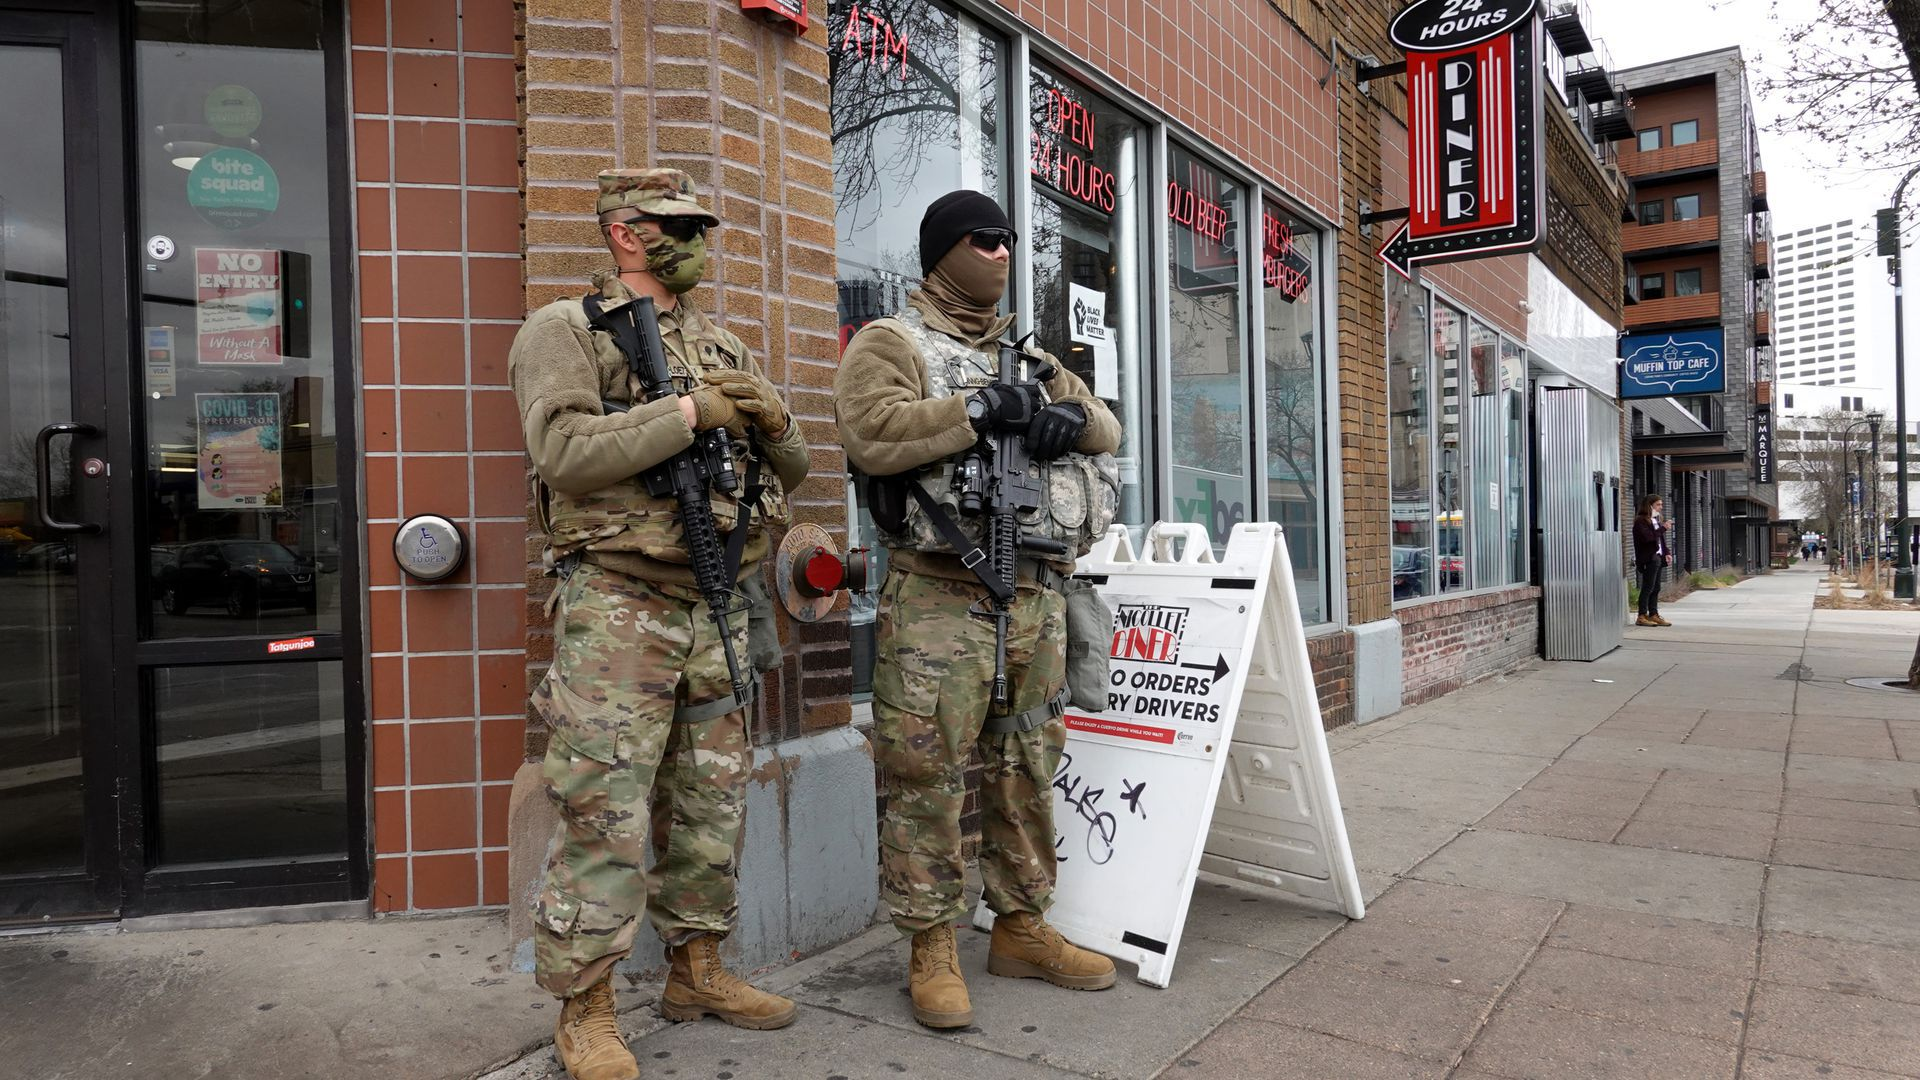 National guard members stand outside a building